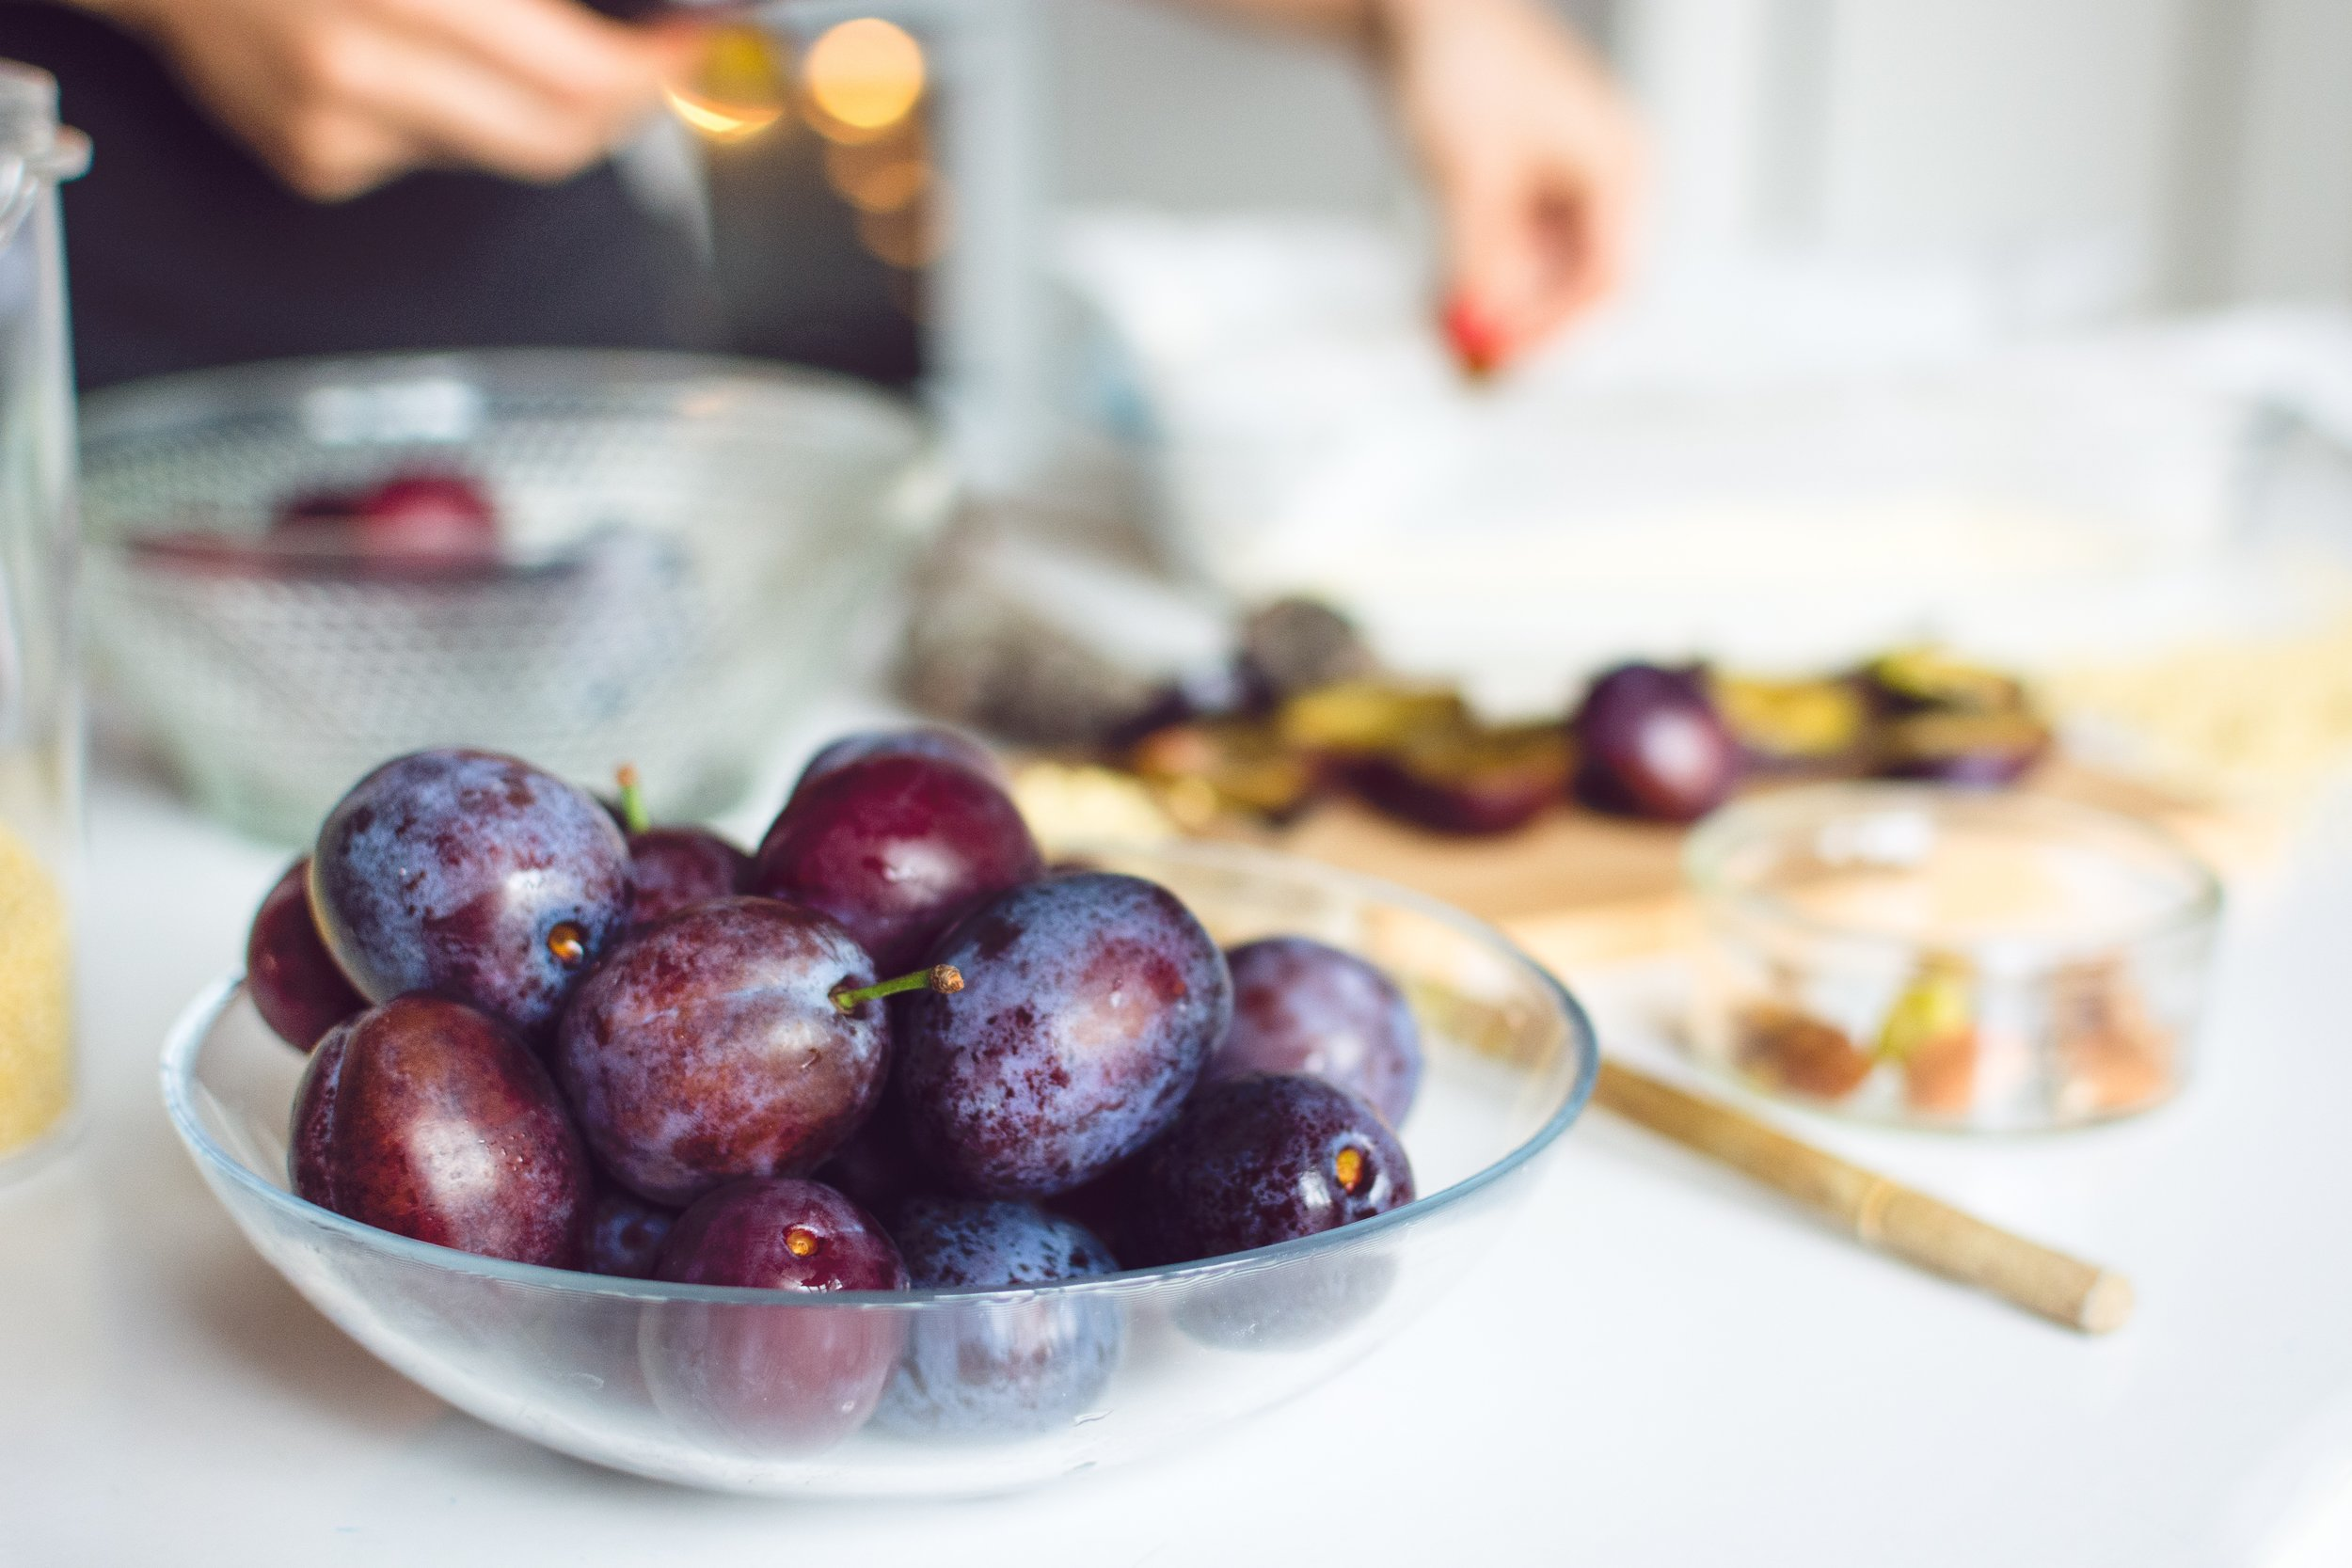 Grapes fill the foreground of a photo about cooking.